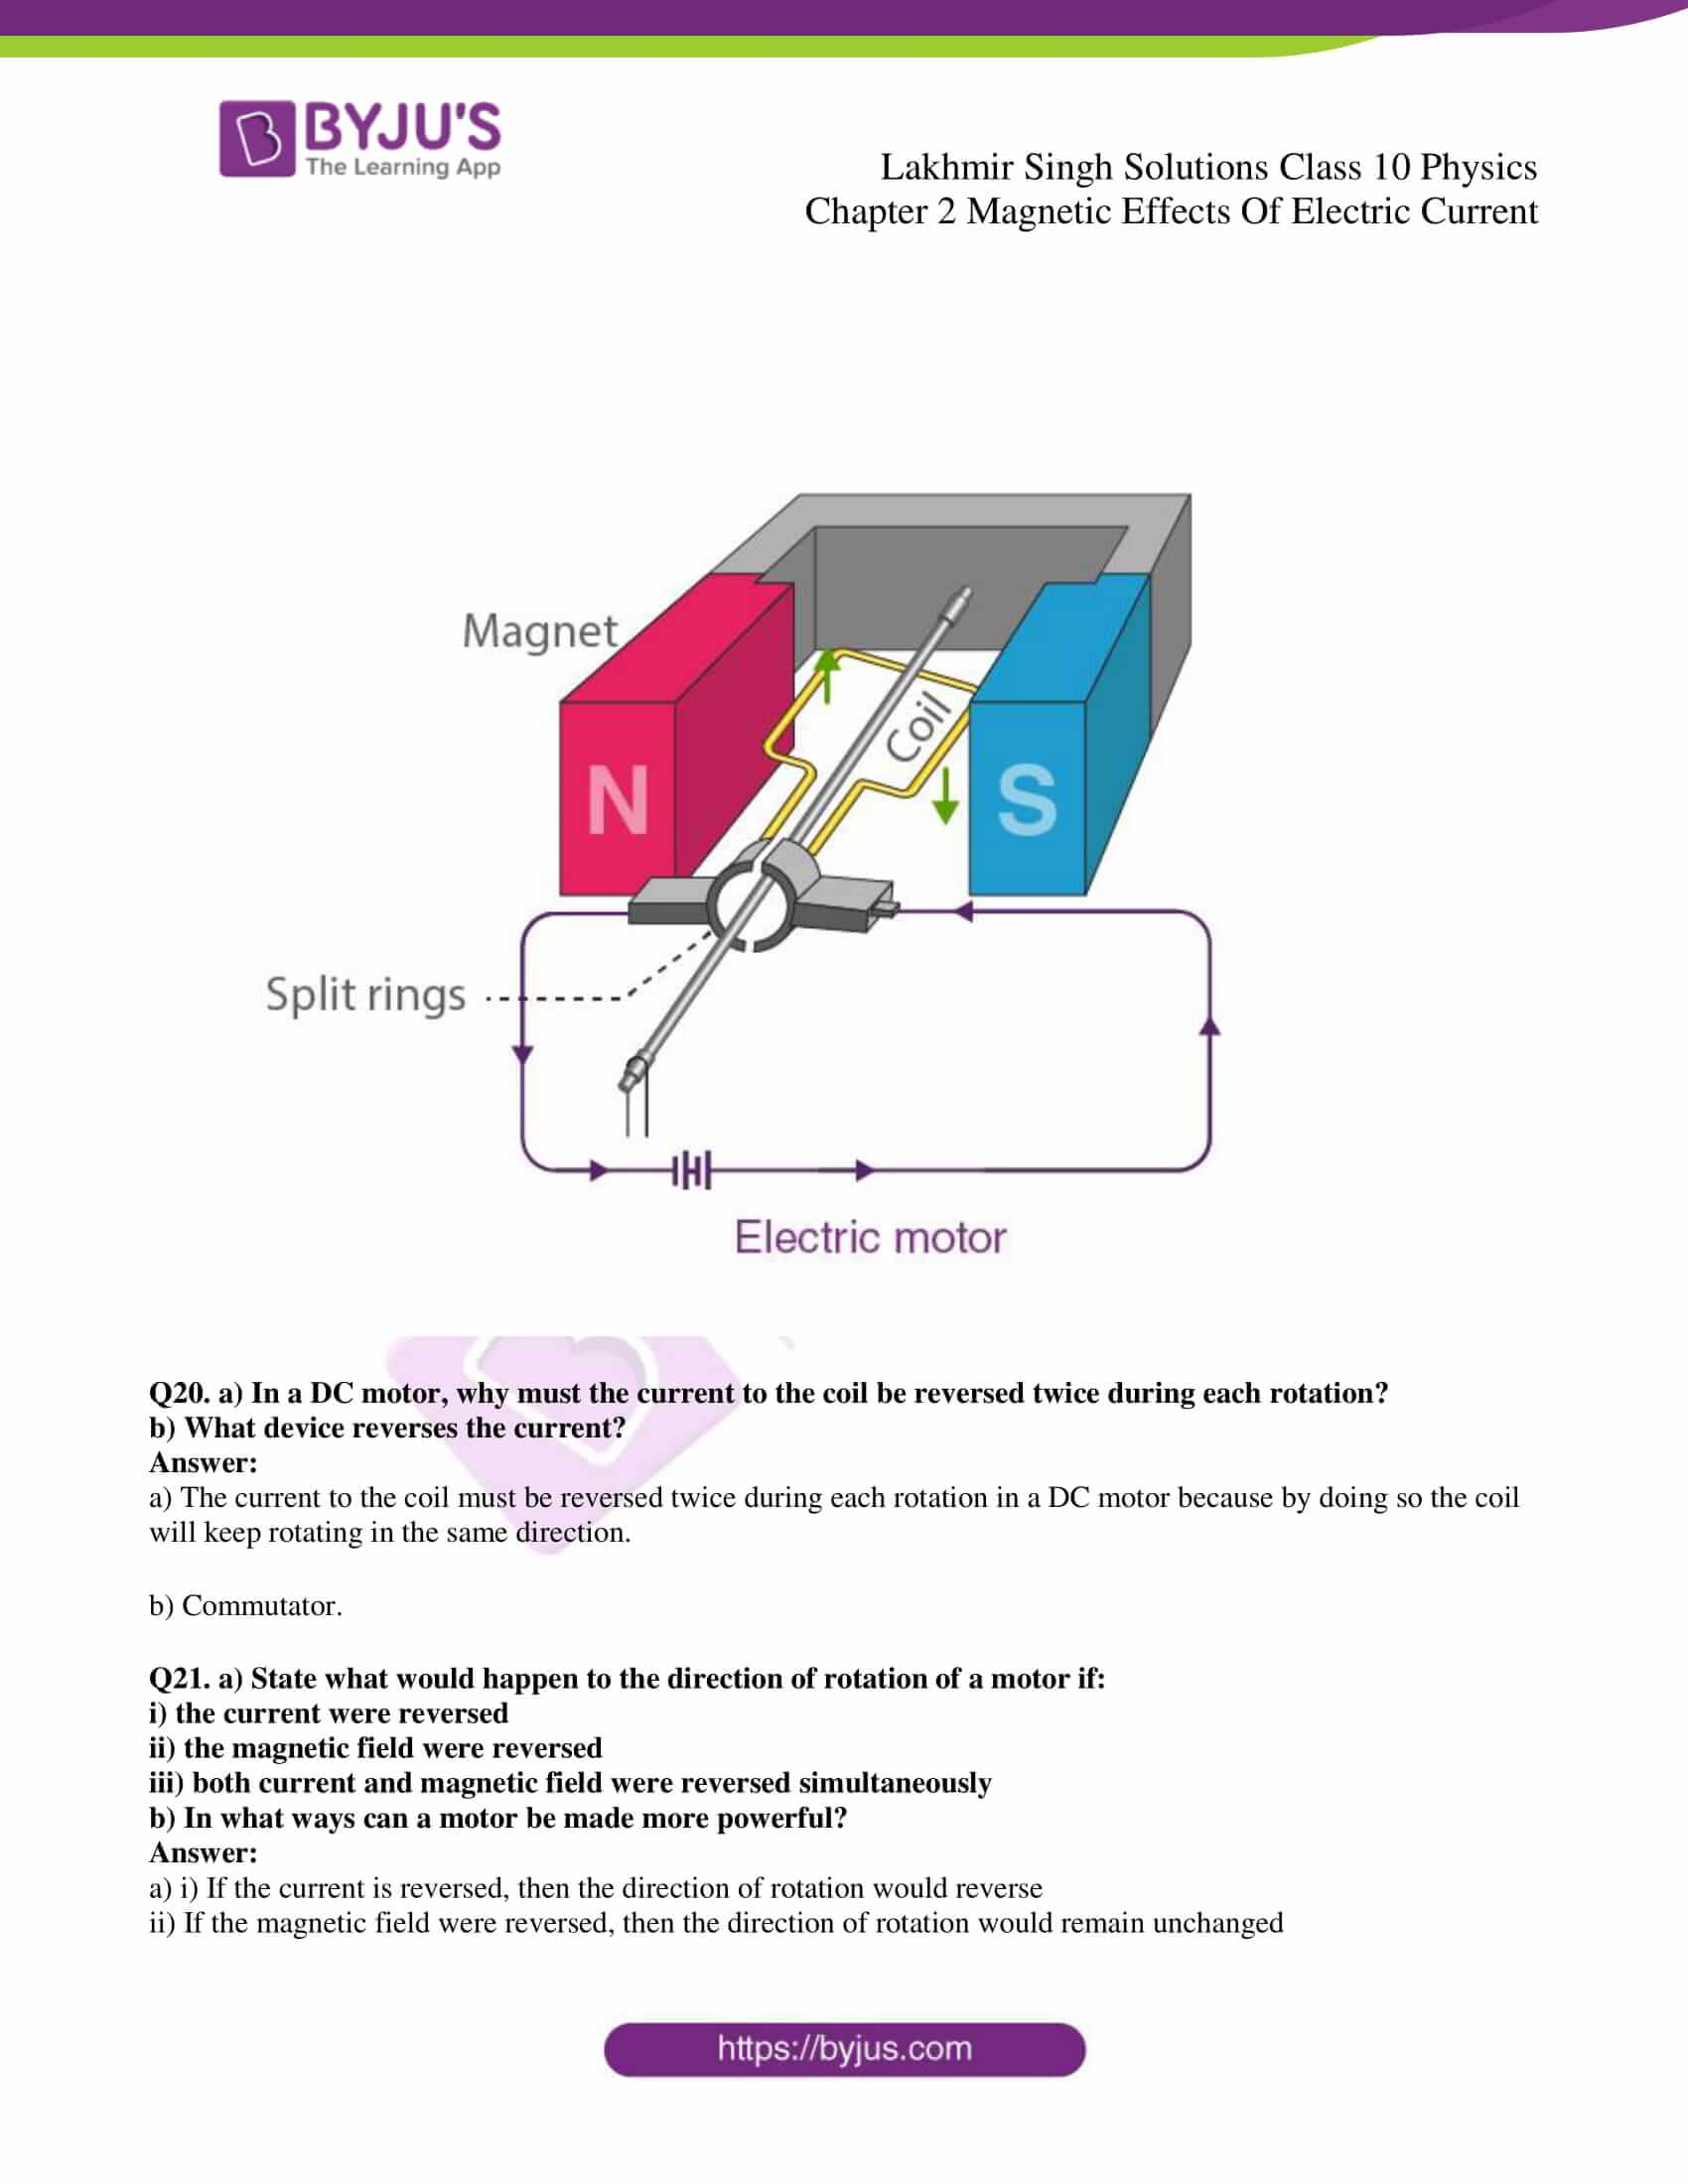 lakhmir singh sol class 10 physics chapter 2 21